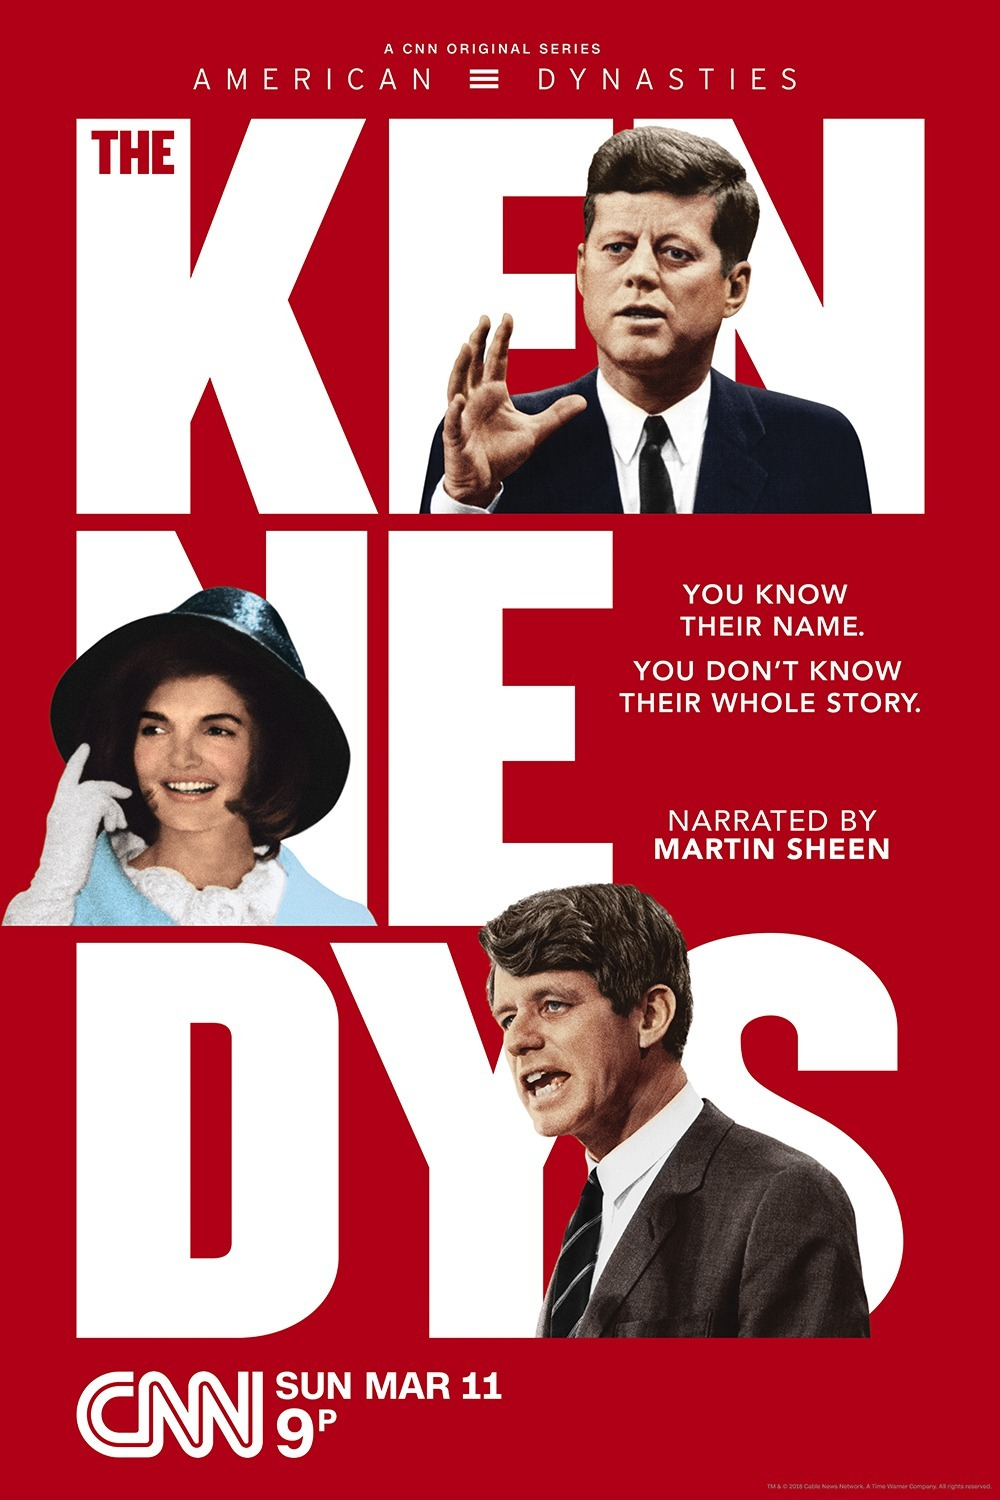 American Dynasties: The Kennedys (TV Series 2018)